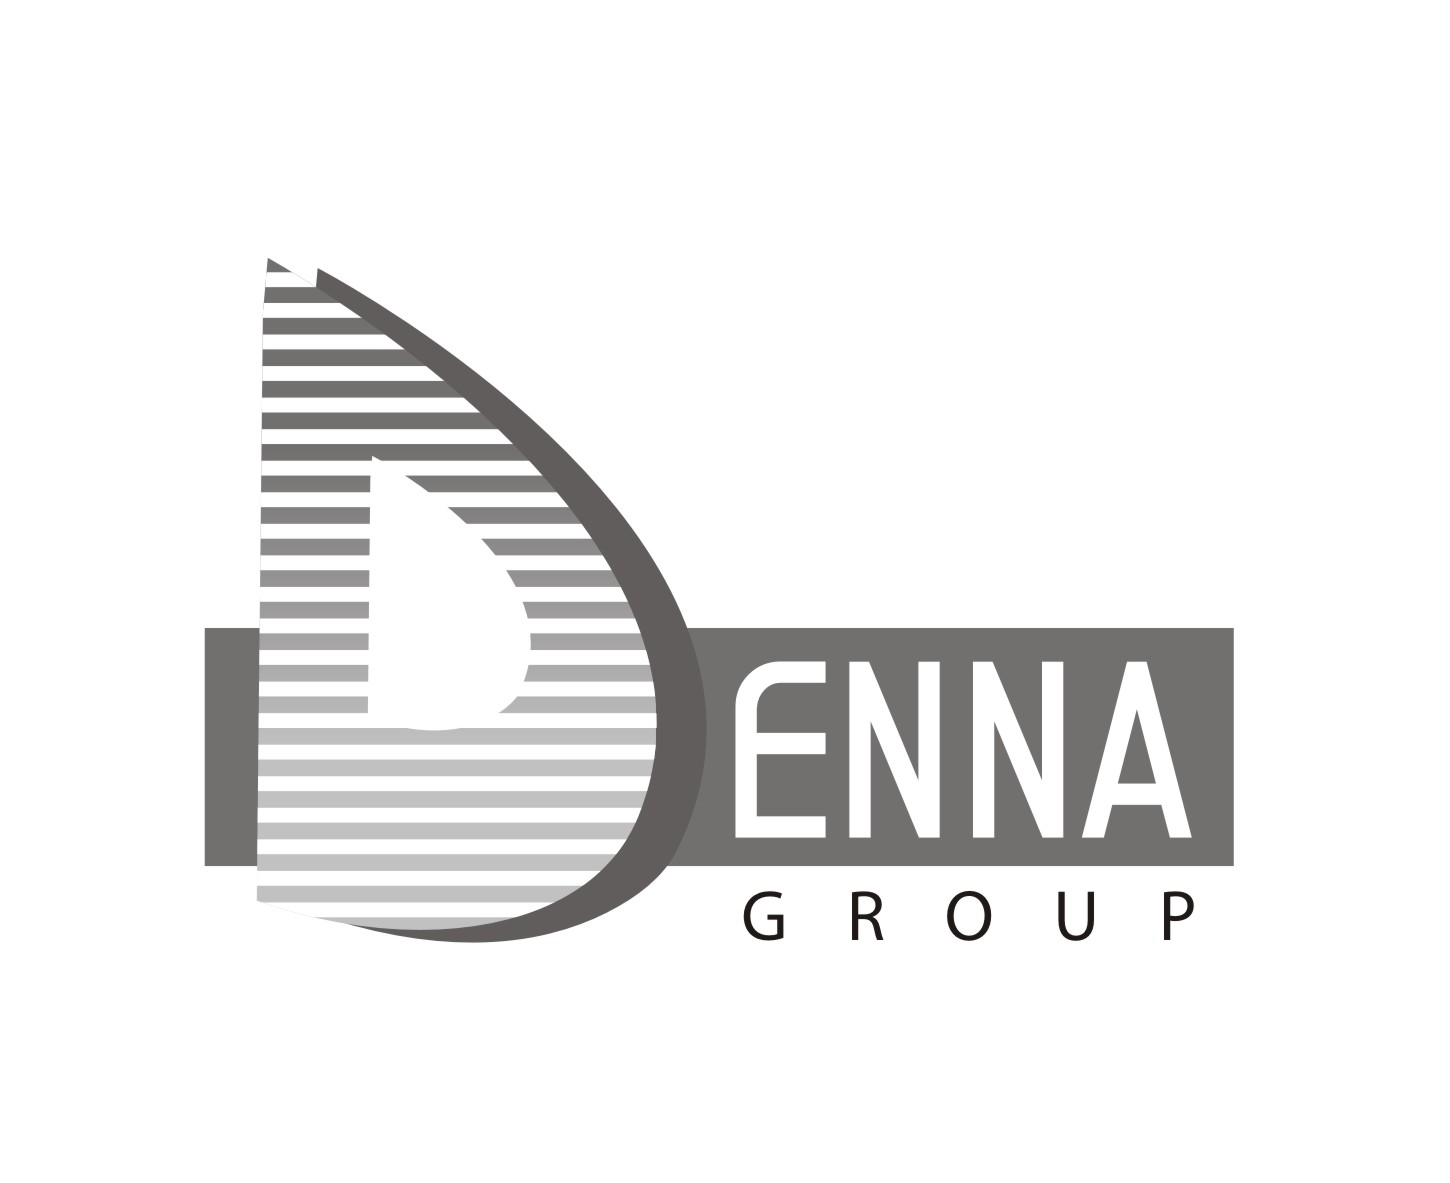 Logo Design by Mahida Kirit Chandrasinh - Entry No. 114 in the Logo Design Contest Denna Group Logo Design.